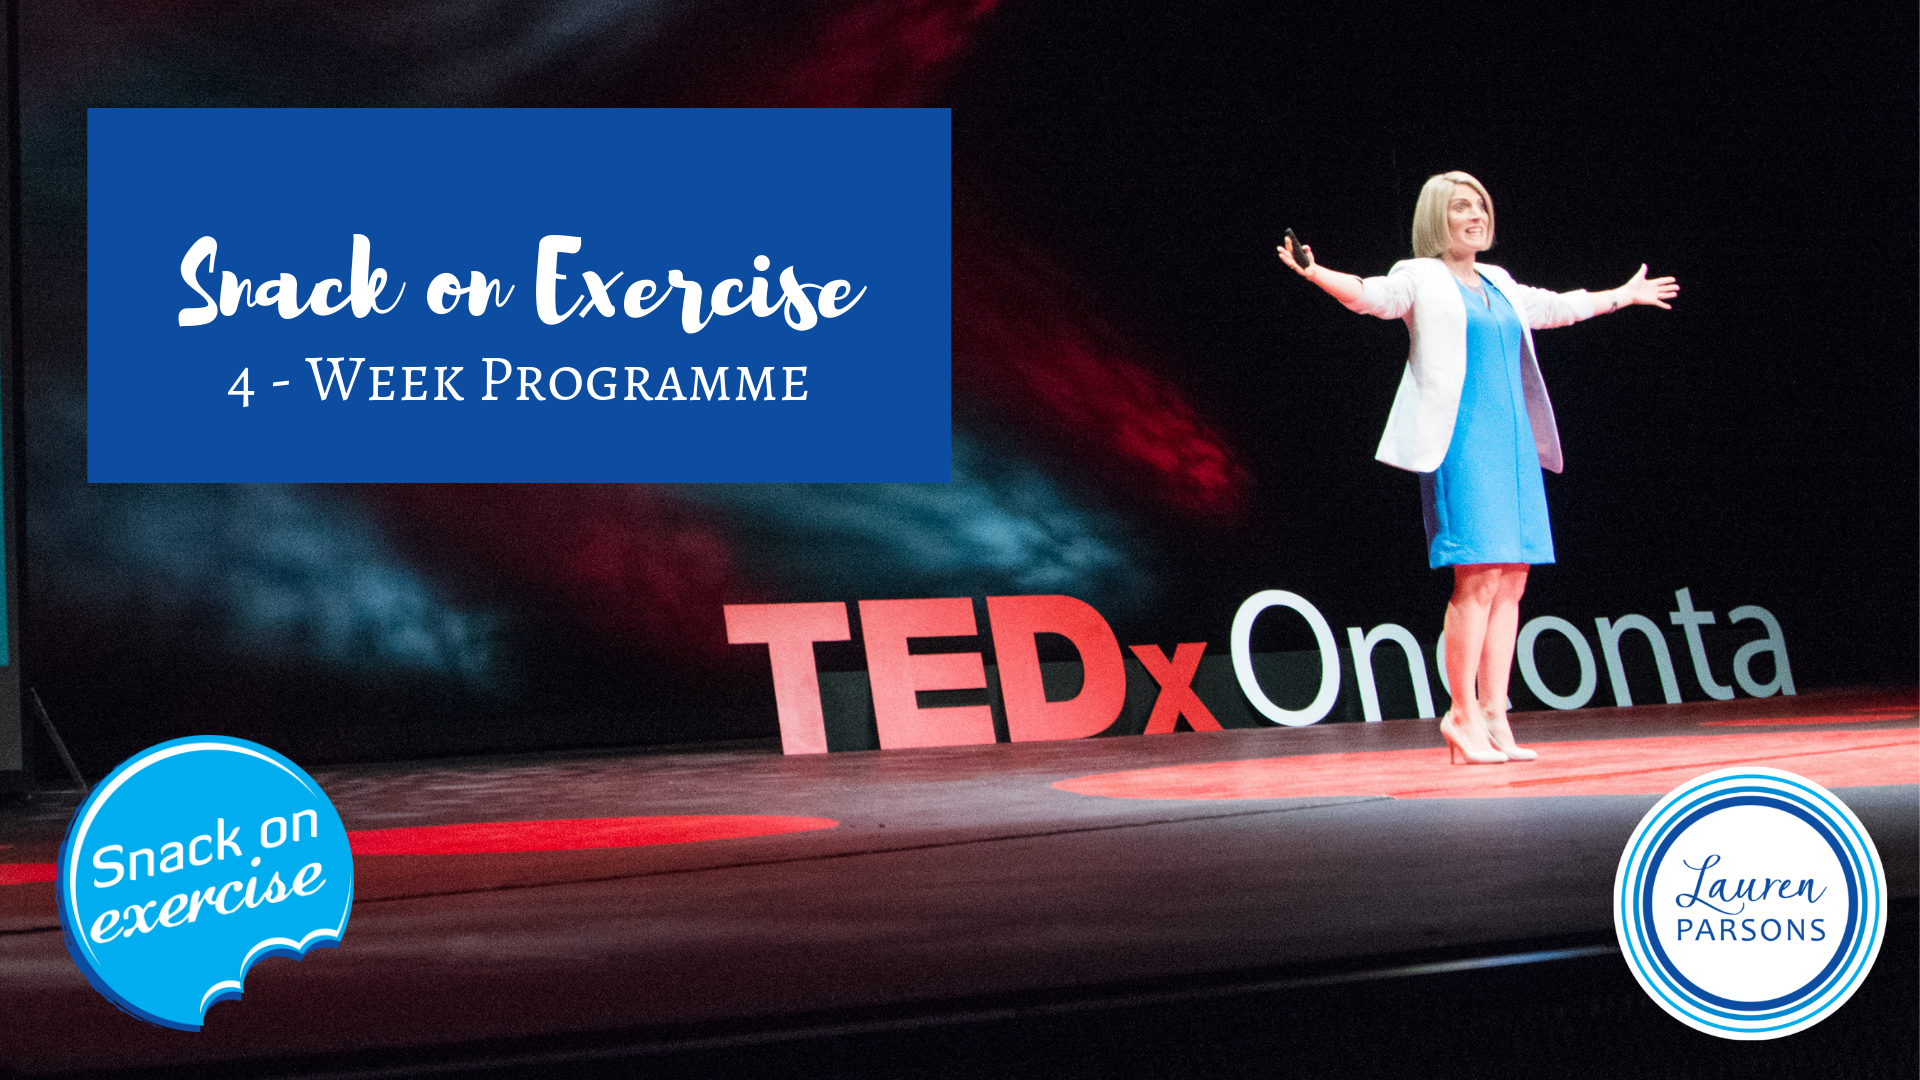 Lauren Parsons Workplace Wellbeing Training - Snack on Exercise TEDx Talk